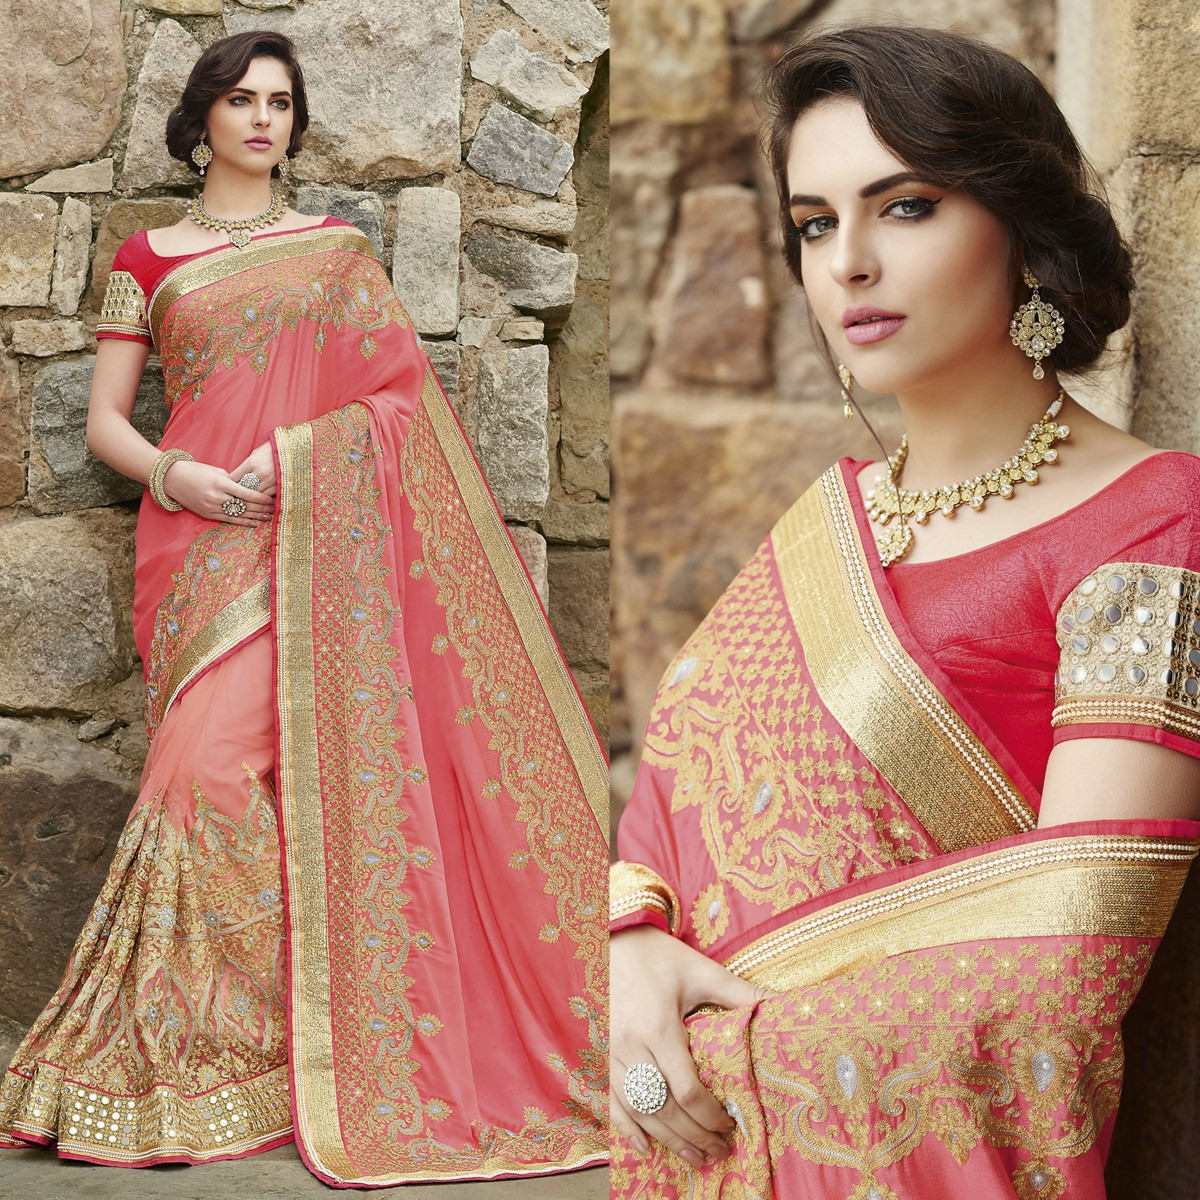 e1604cd1467 Indian Wedding Season Women Dresses Online With Discount - Top ...